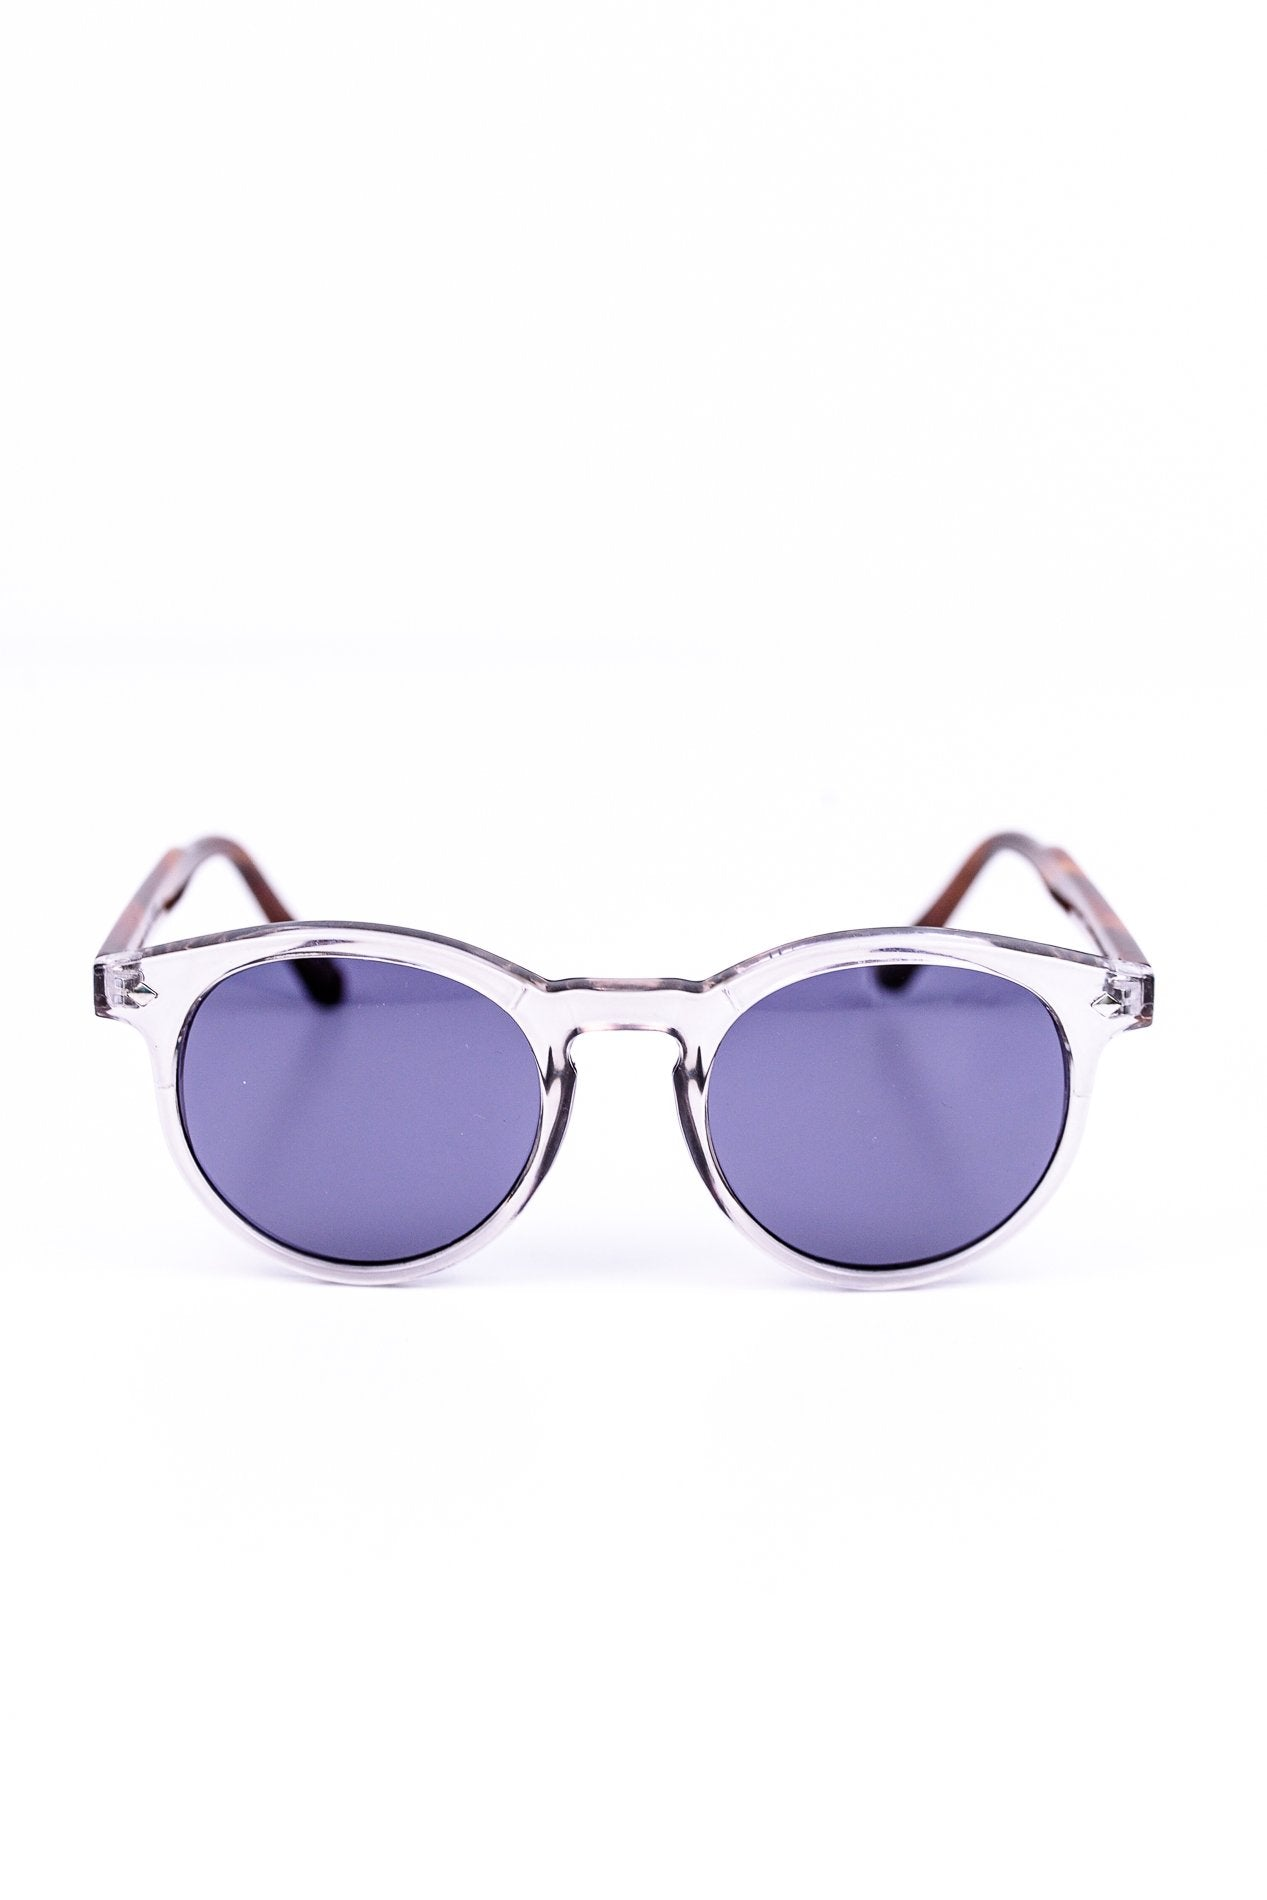 Clear Light Taupe Round Frame Sunglasses - SGL216LTA - FREE hard case